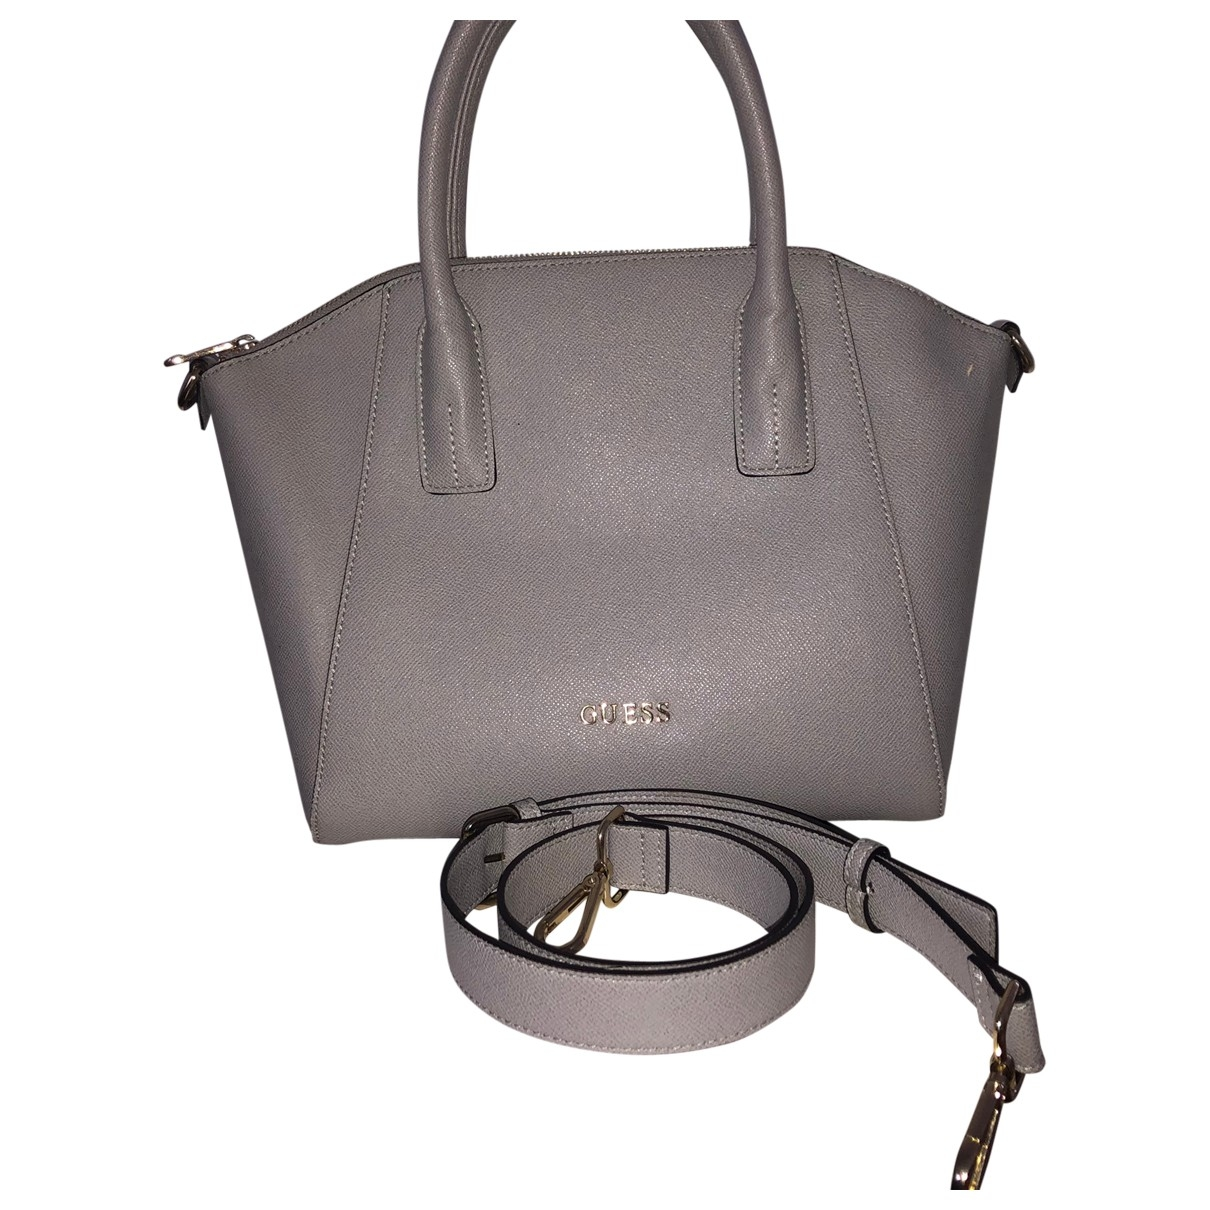 Guess \N Grey Patent leather handbag for Women \N